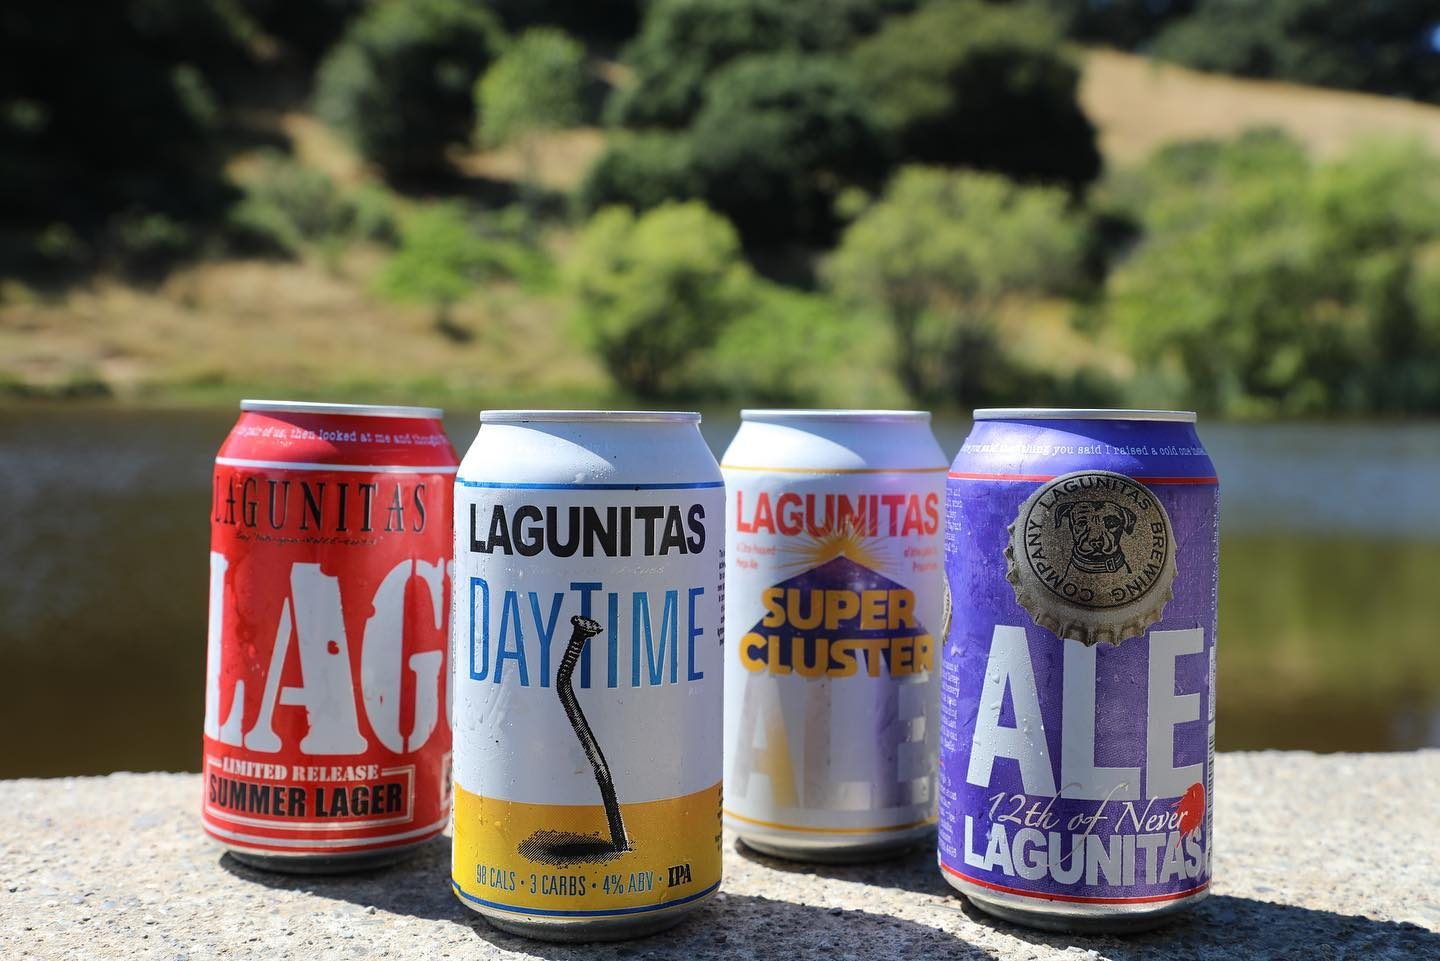 Low Cal Lagunitas Beer